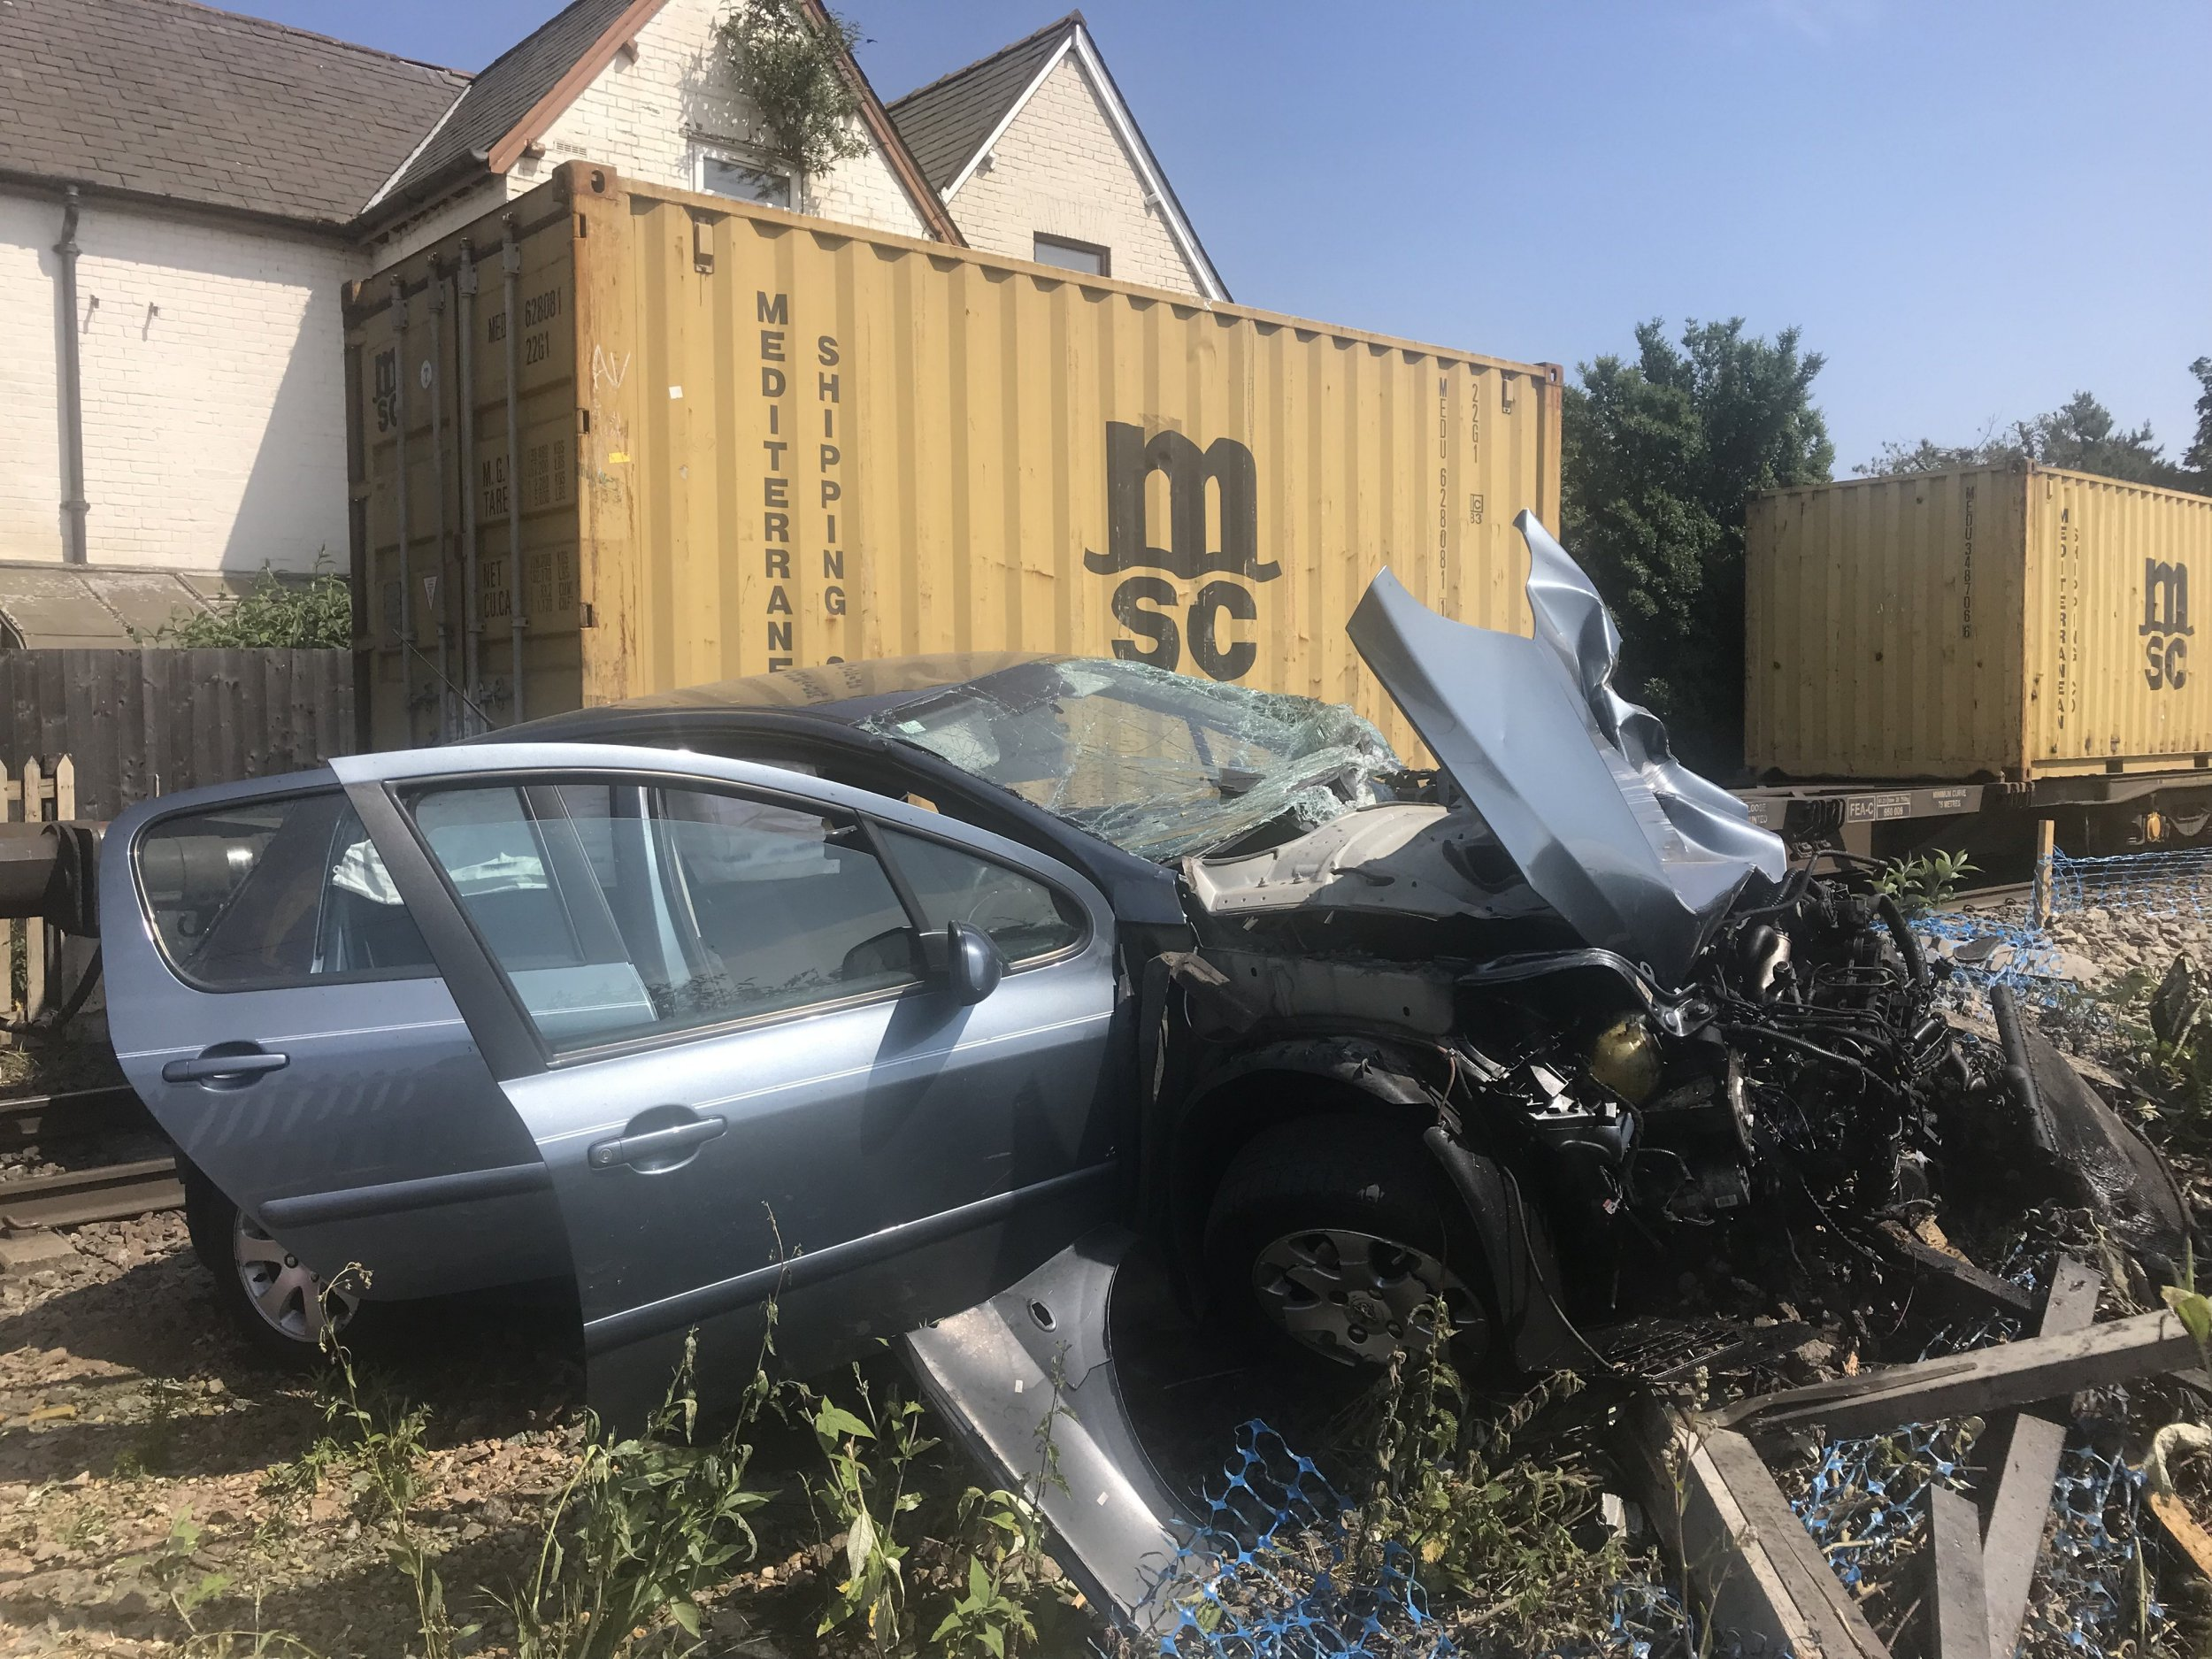 Driver arrested after freight train smashes car with a baby still inside